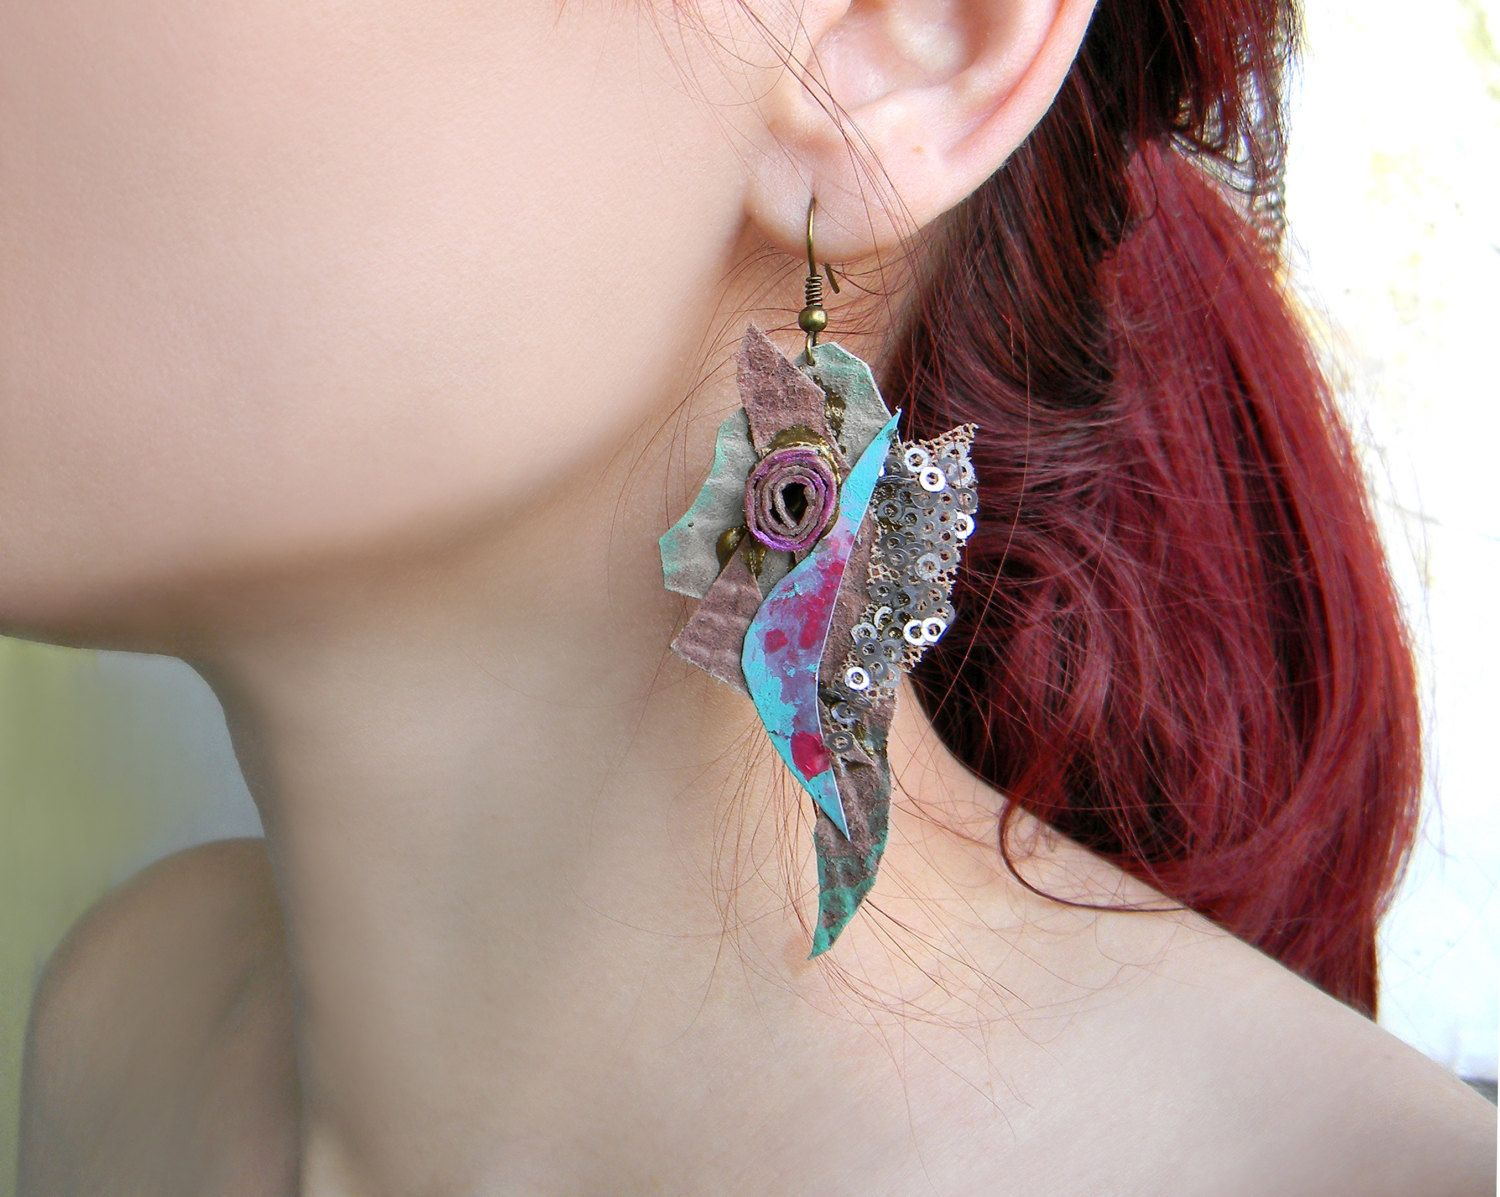 Quirky Huge Earrings Leather and Lace Earrings, Paper ...